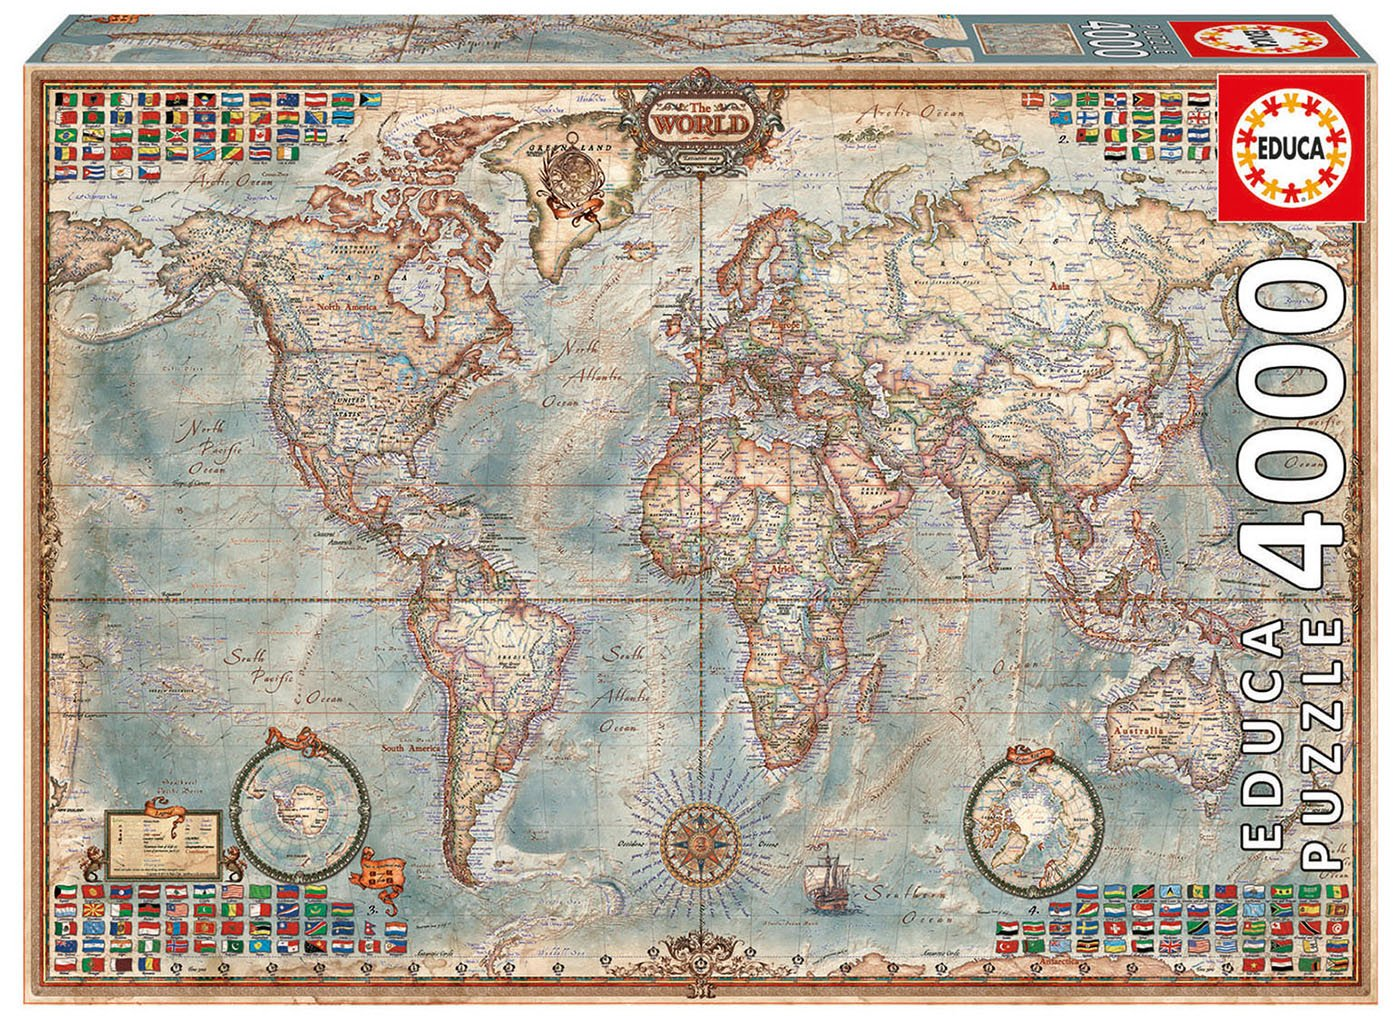 4,000 Piece Puzzle - The World Map by Educa